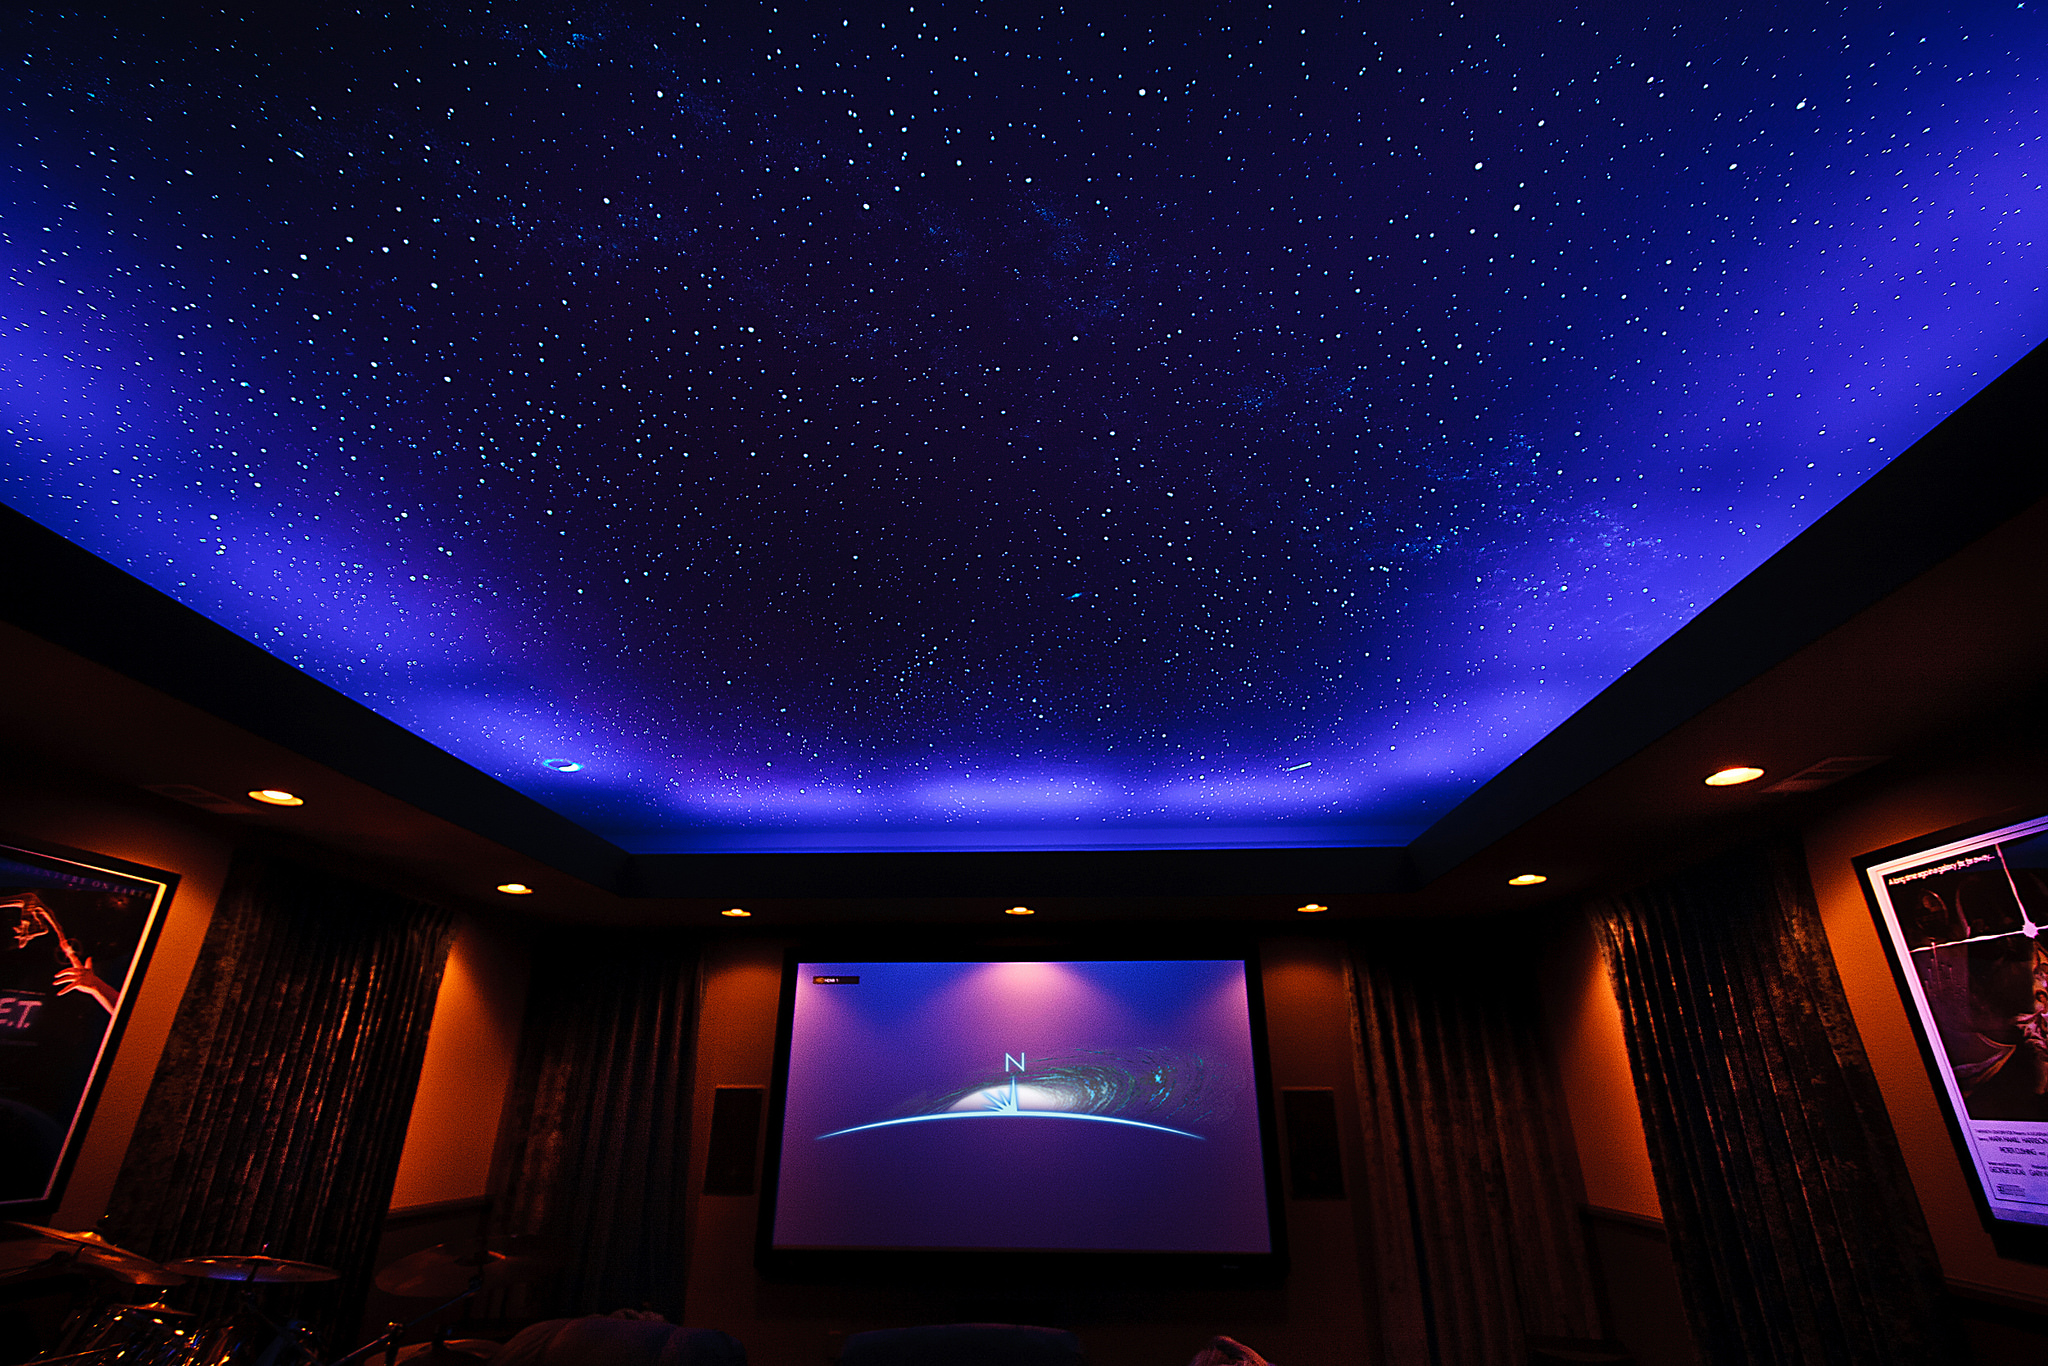 Led Ceiling Lights Home Theatre : Home theater ceiling lights tips for buying warisan